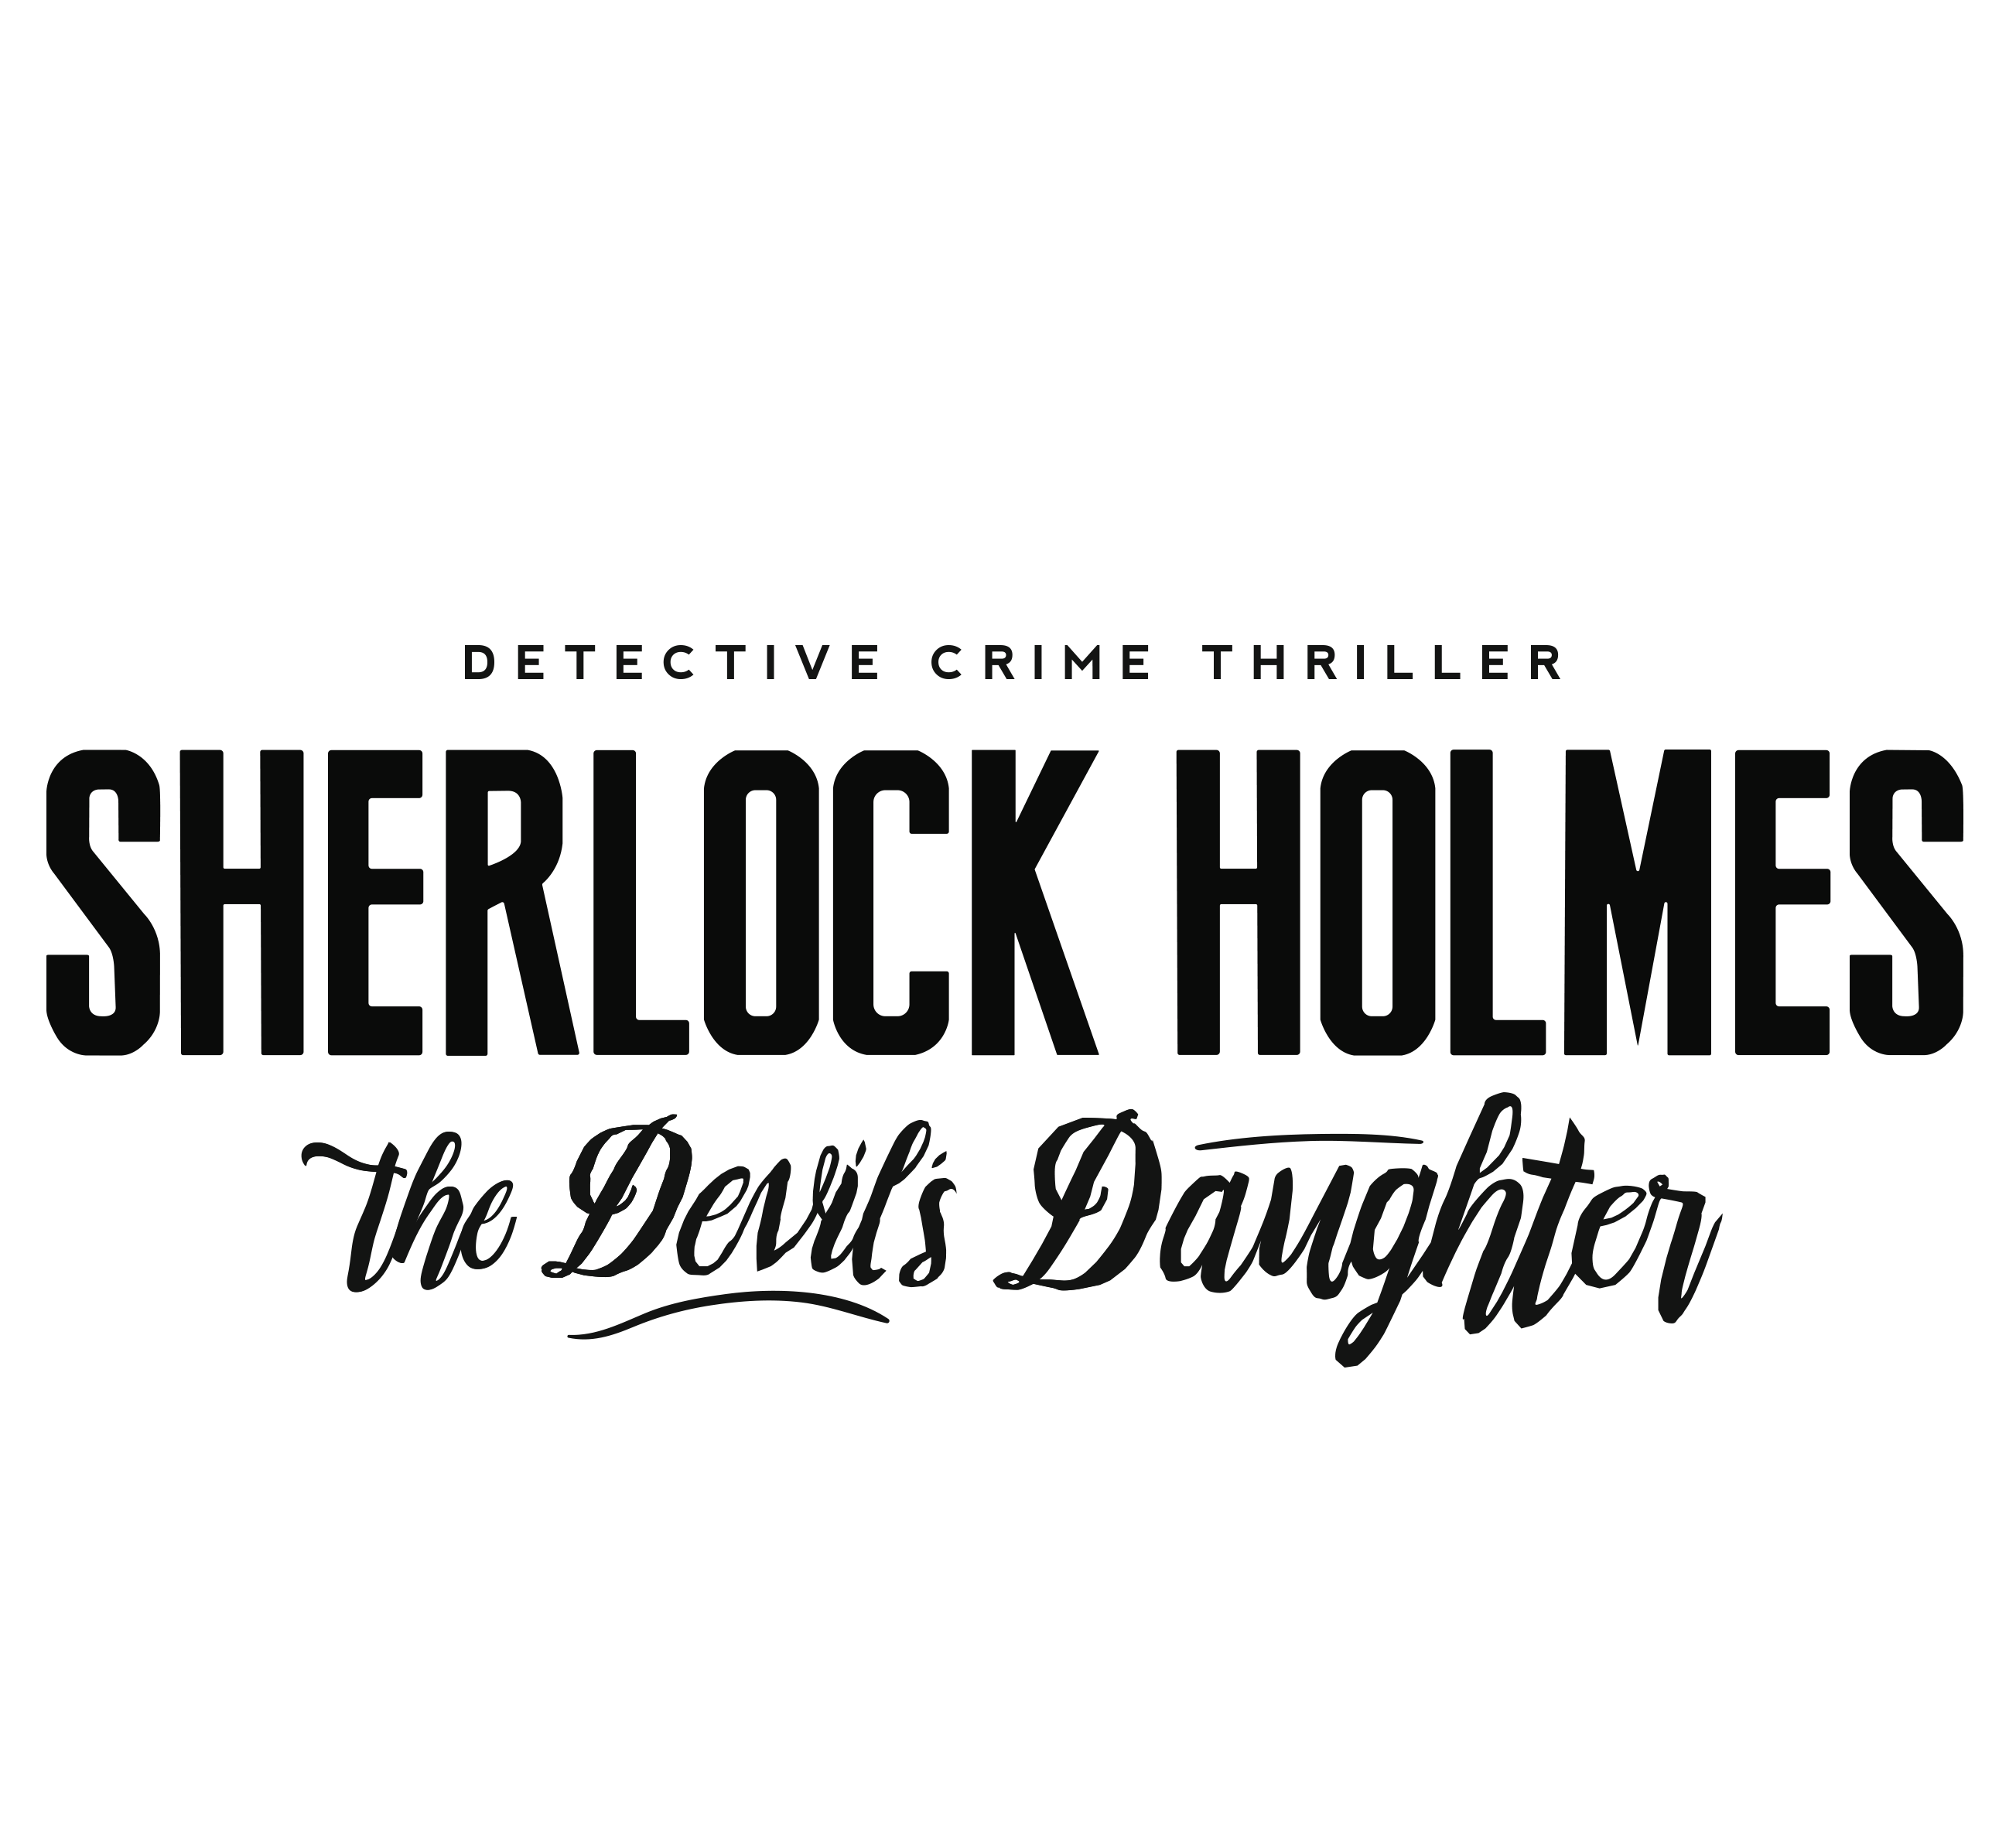 SHERLOCK HOLMES_THE DEVIL'S DAUGHTER